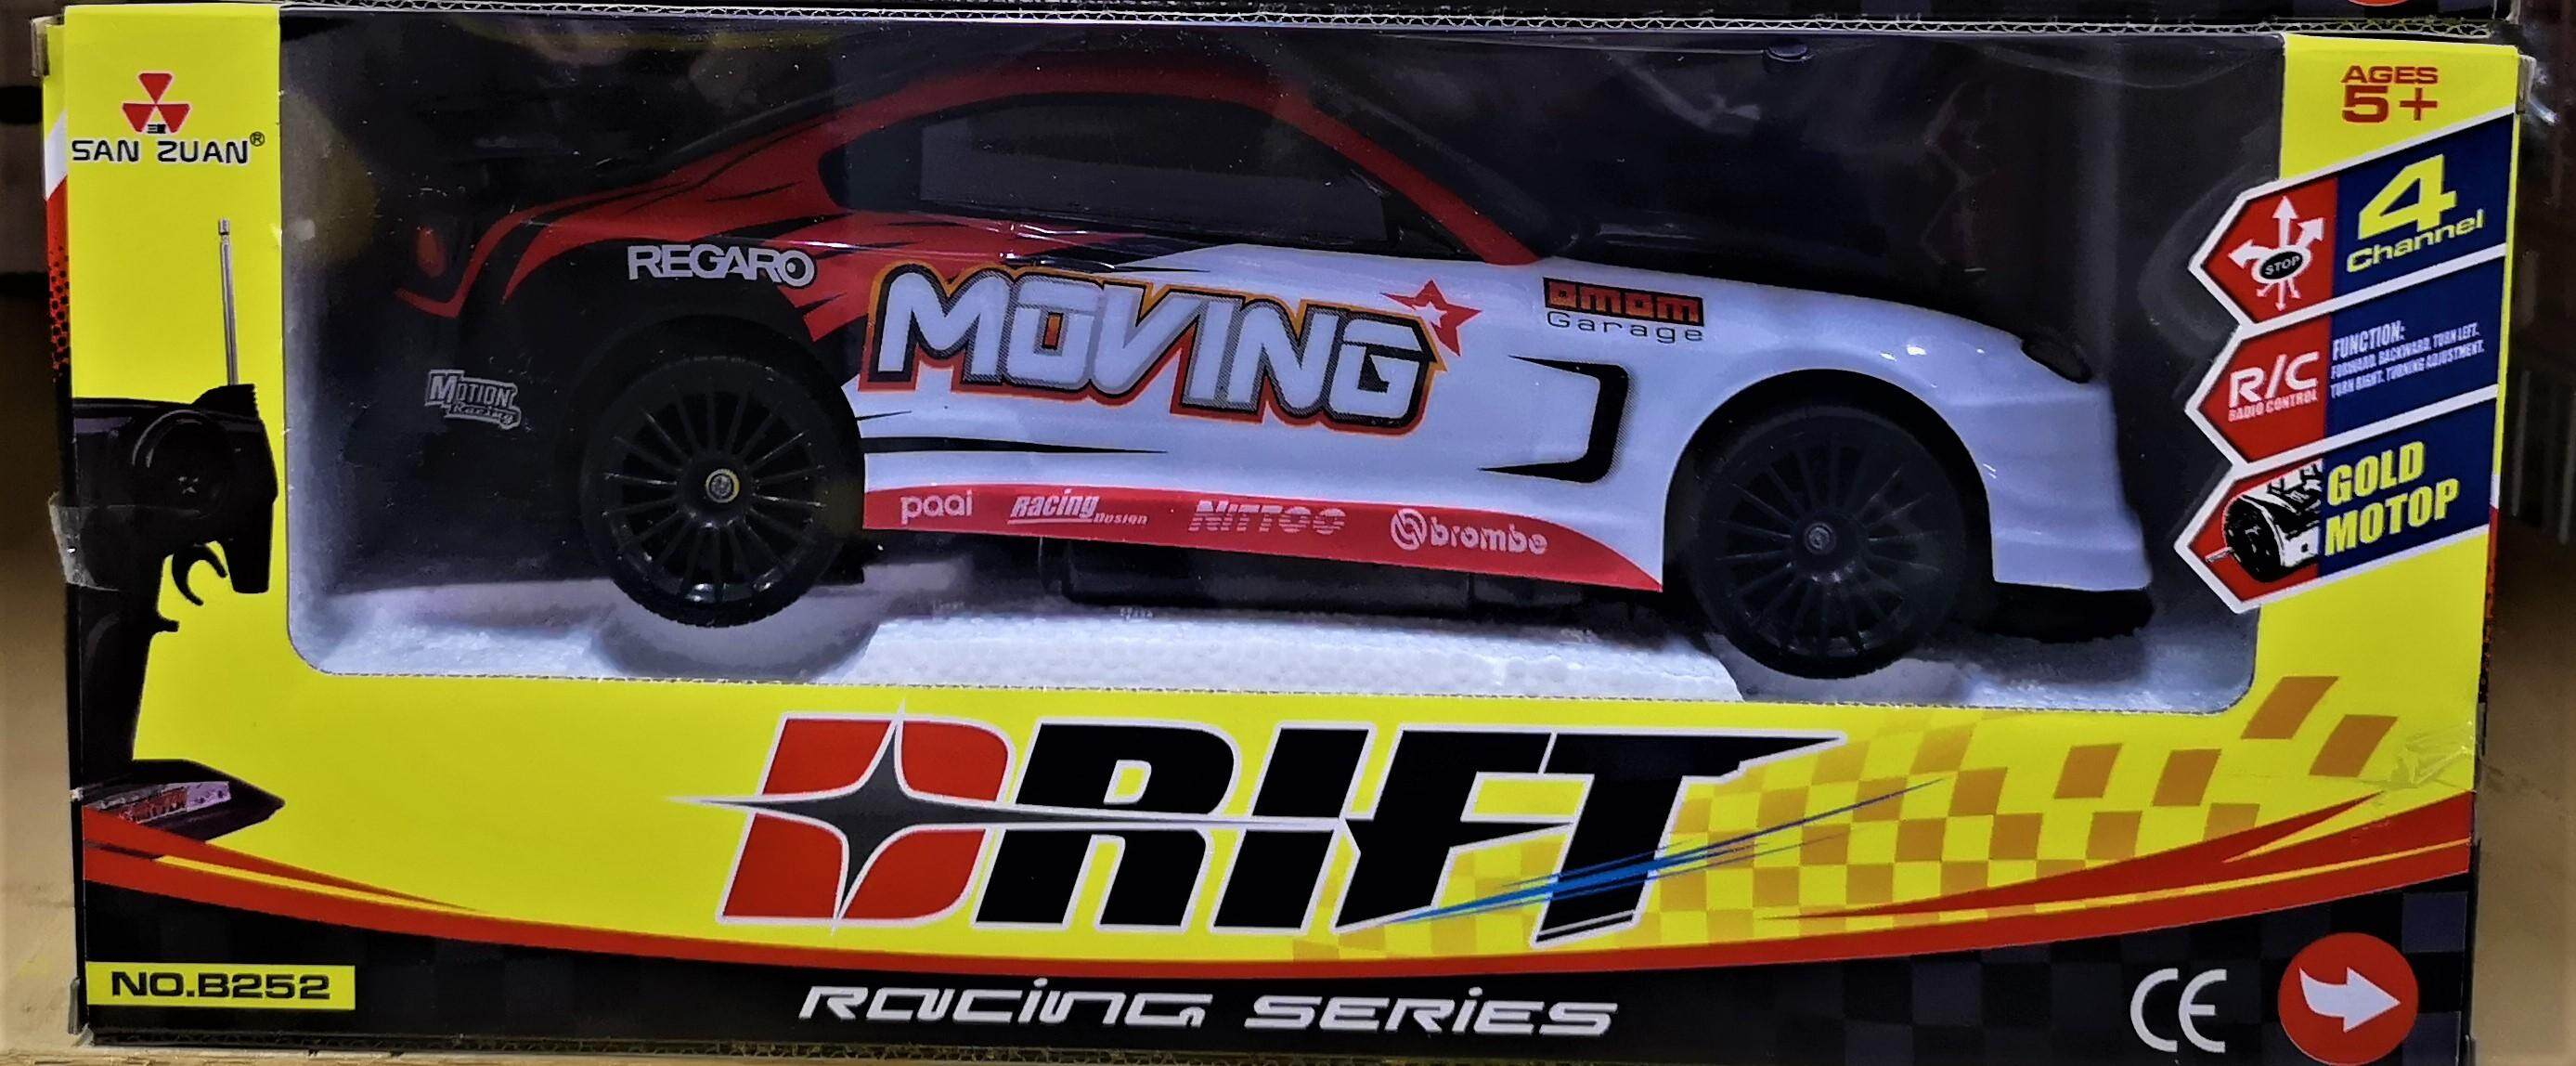 Super Fast Drift Champion R/C Sports Car Cool LED Light Remote Control Drifting Race Toys for boys